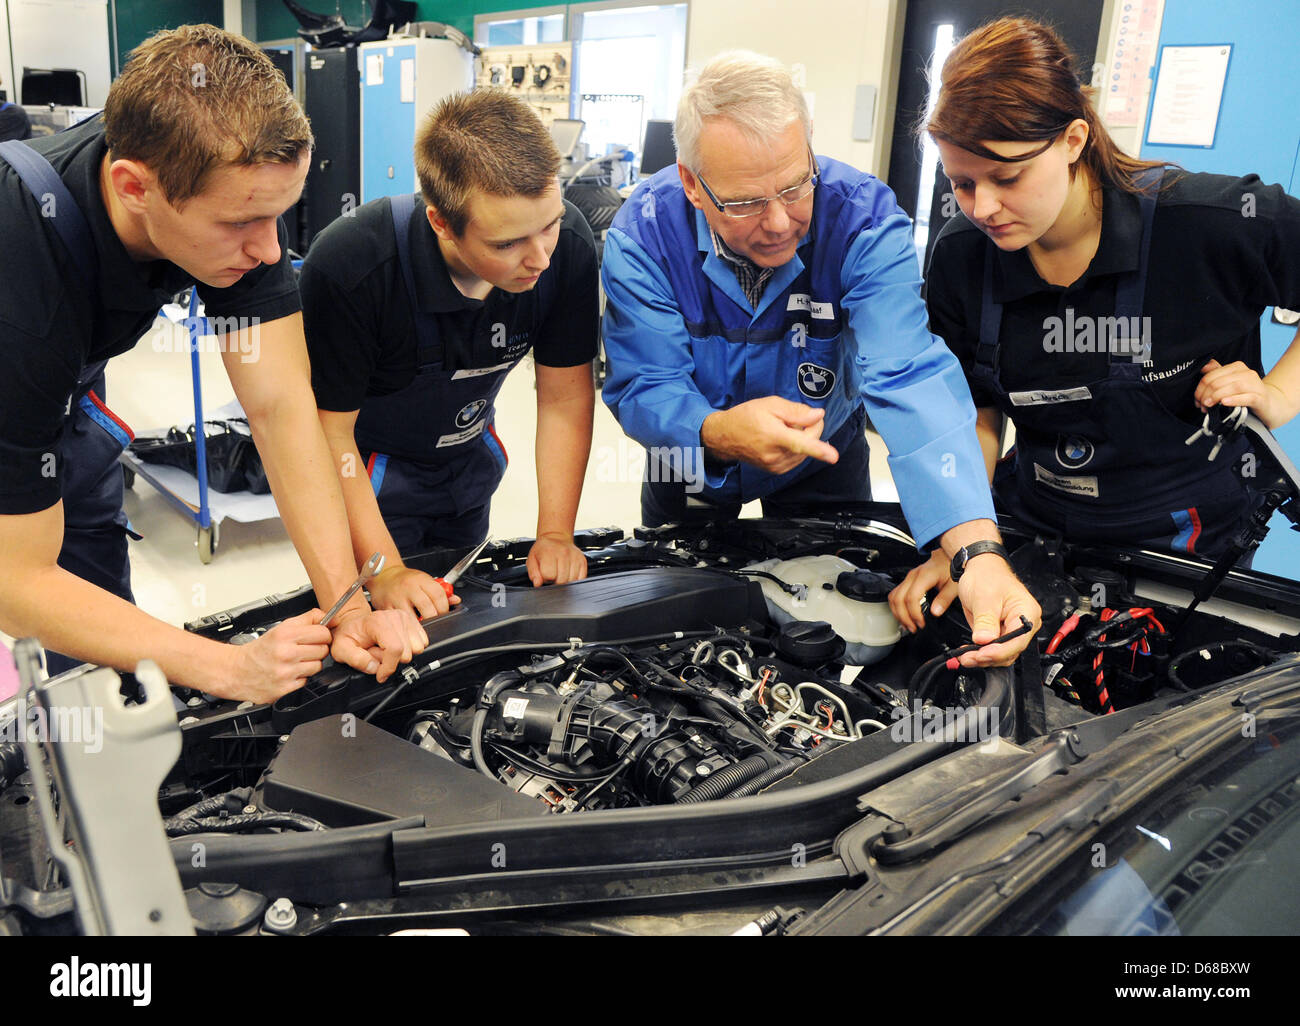 Bmw Factory Leipzig Stock Photos Amp Bmw Factory Leipzig Stock Images Alamy